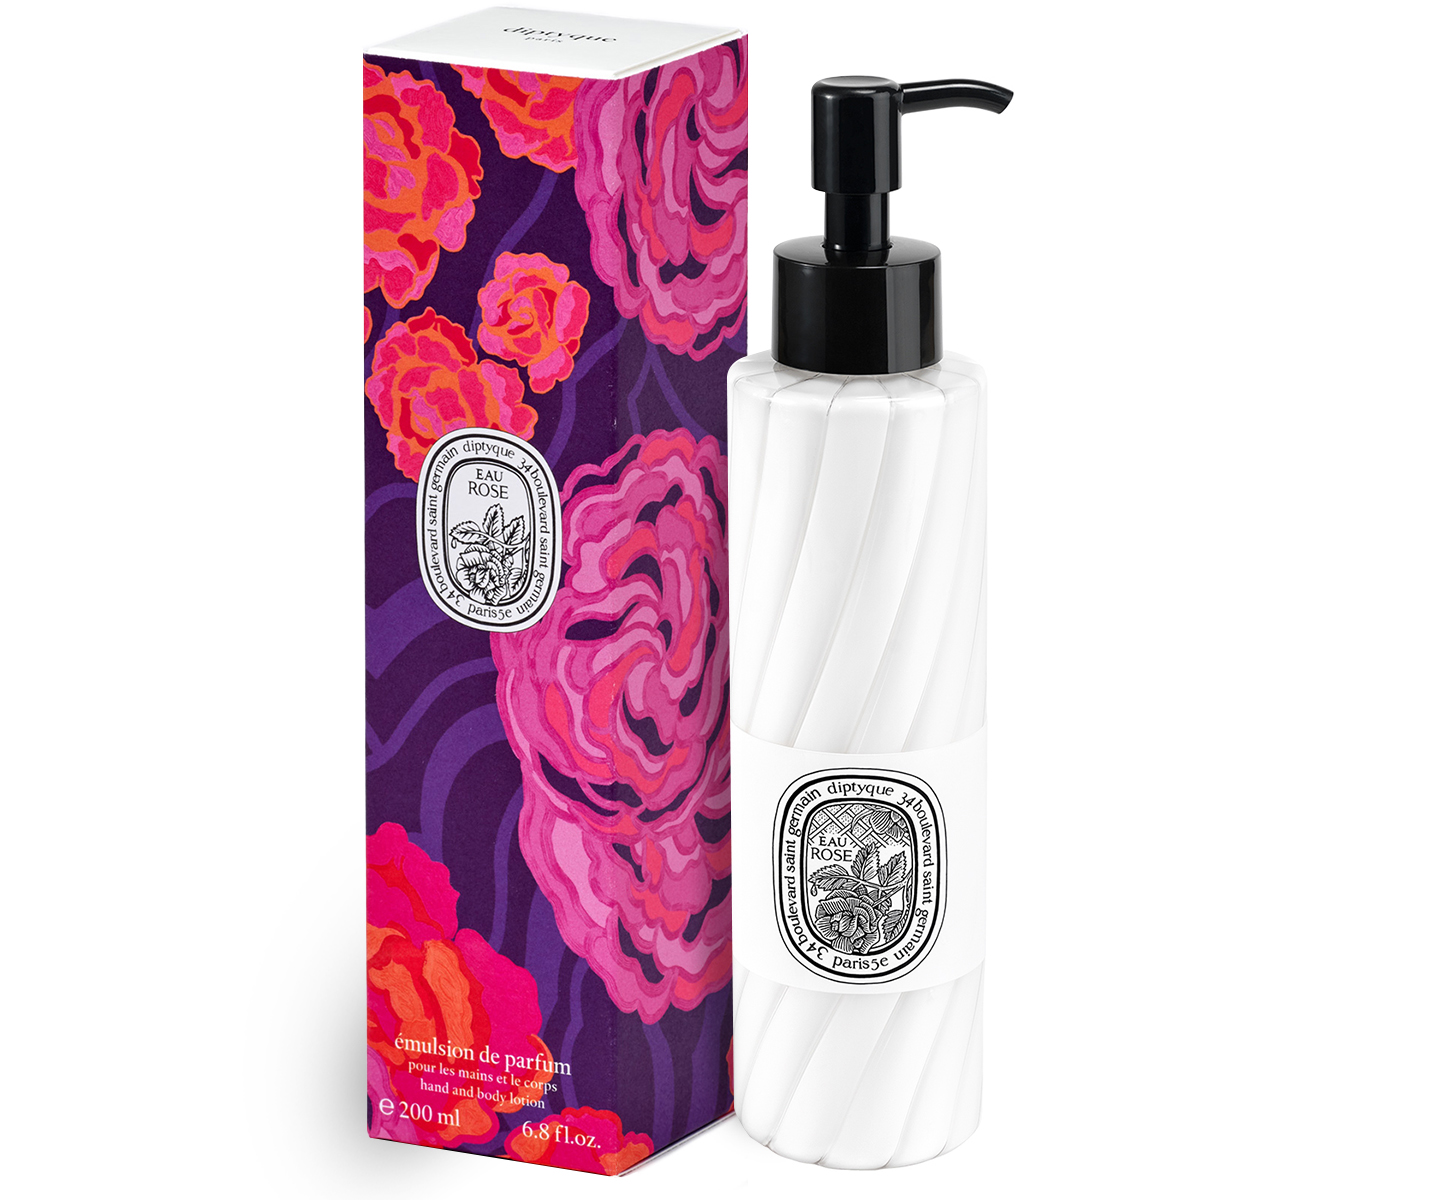 Eau Rose Hand and Body Lotion